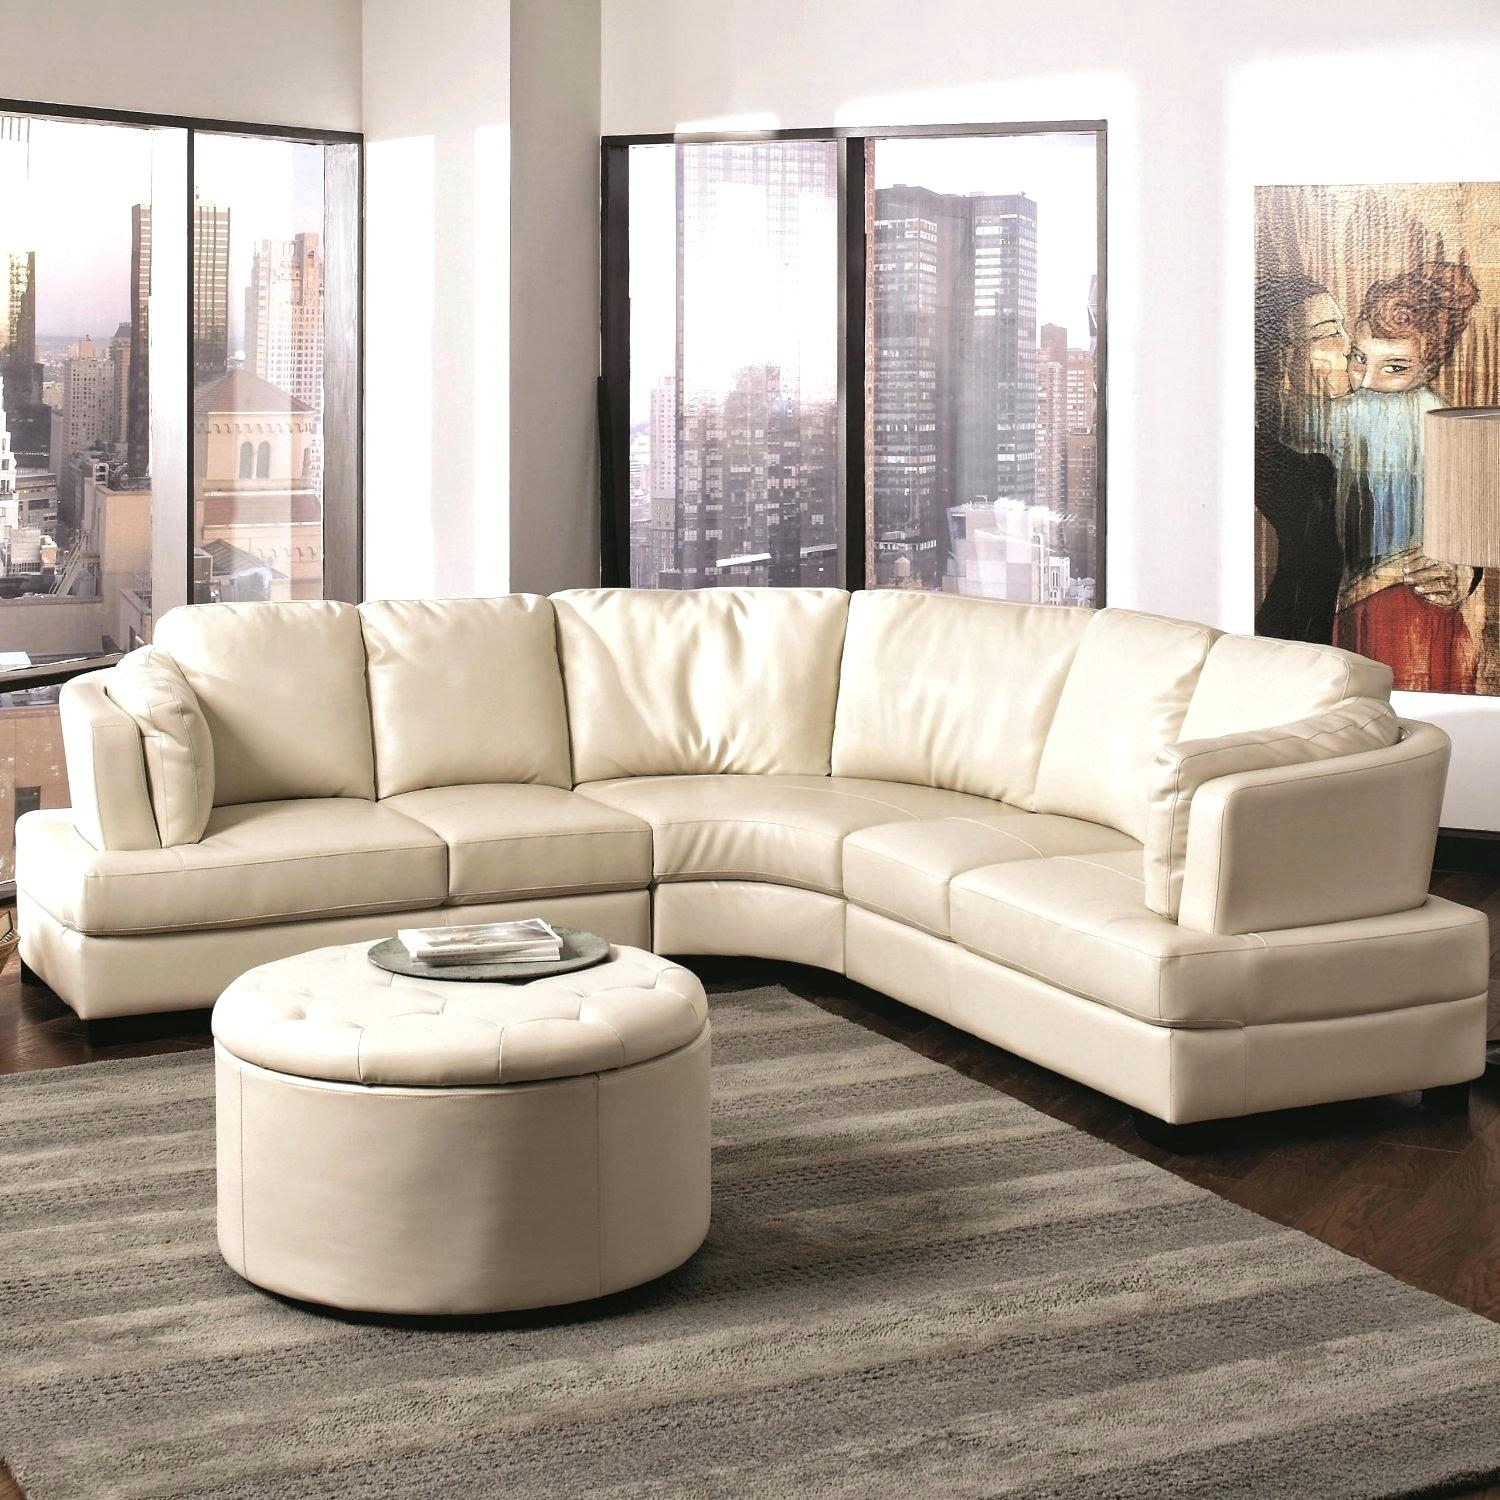 10+ Choices Of London Ontario Sectional Sofas